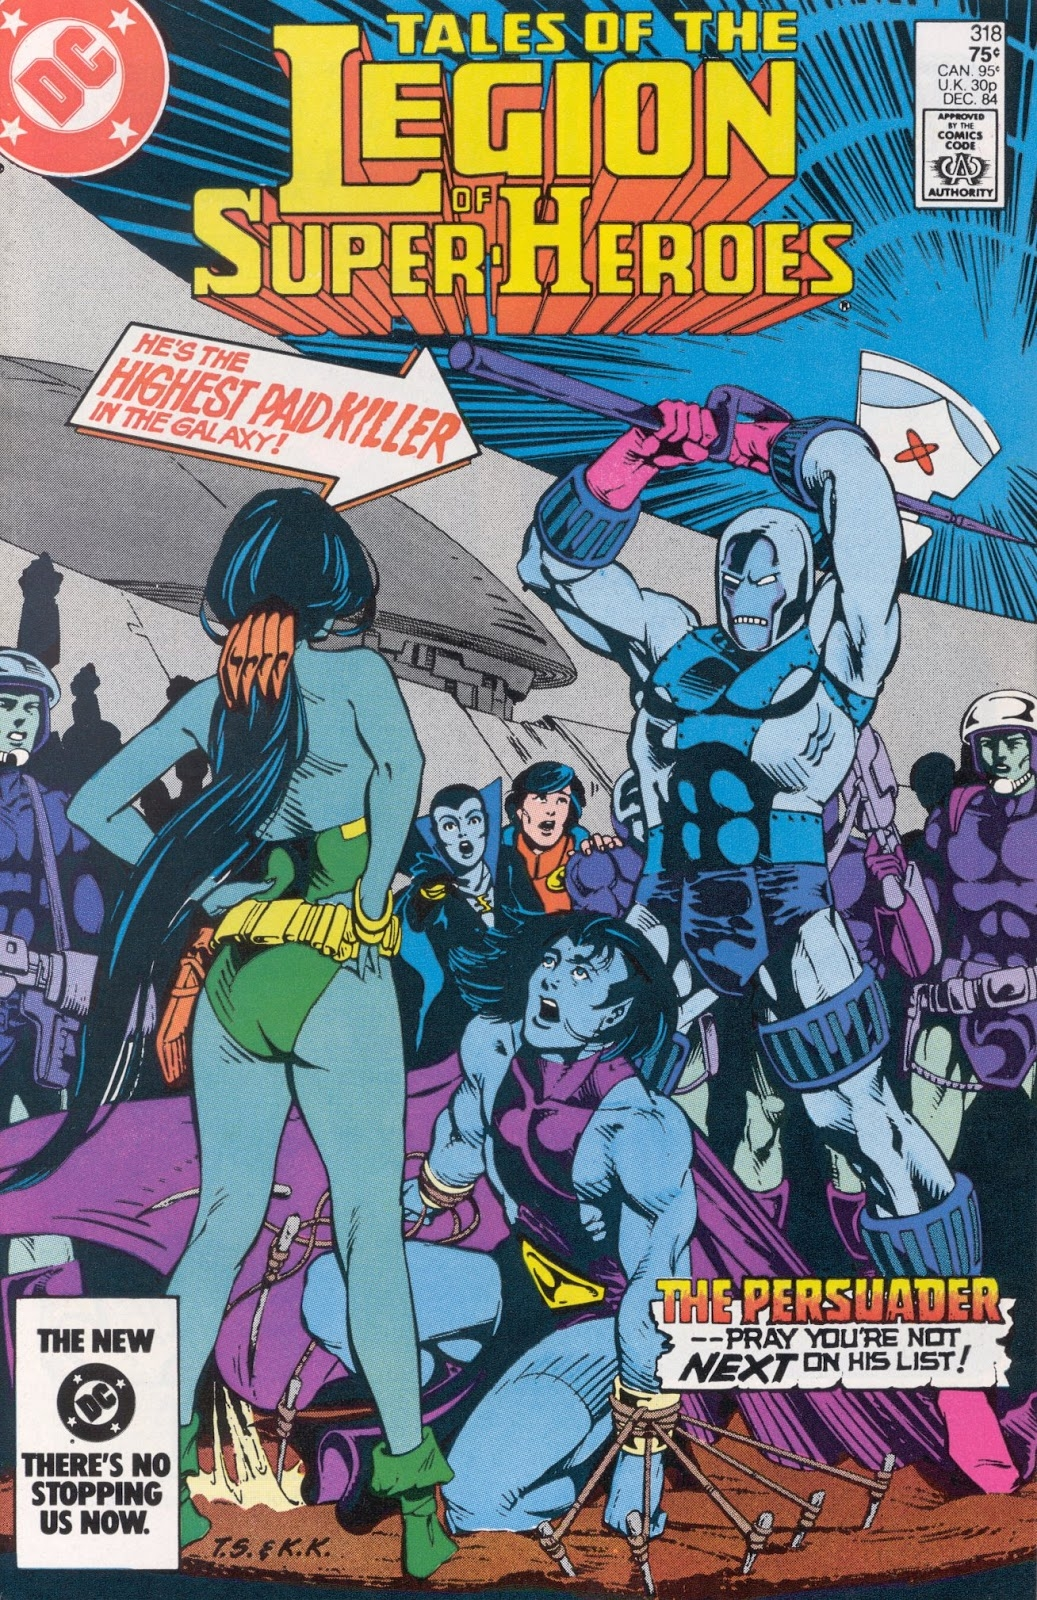 Tales Of The Legion #318 – Reviews of Old Comics